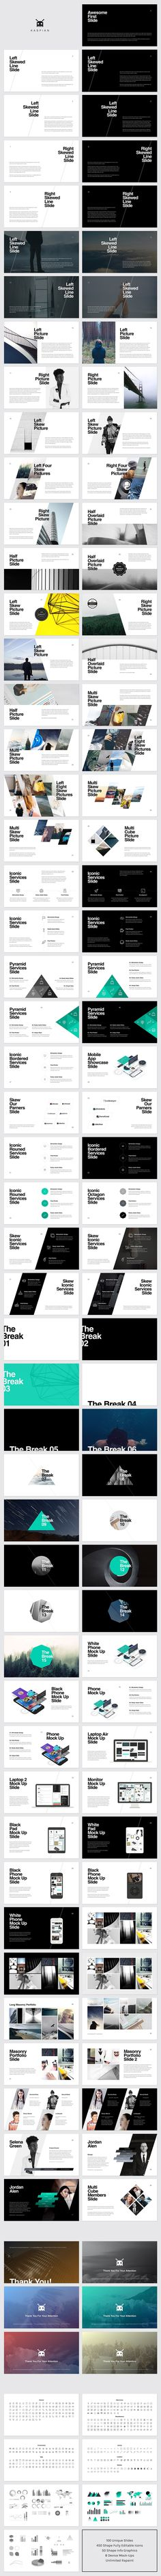 Awesome modern geometric slide deck presentation layout templates. Both dark and light color schemes.